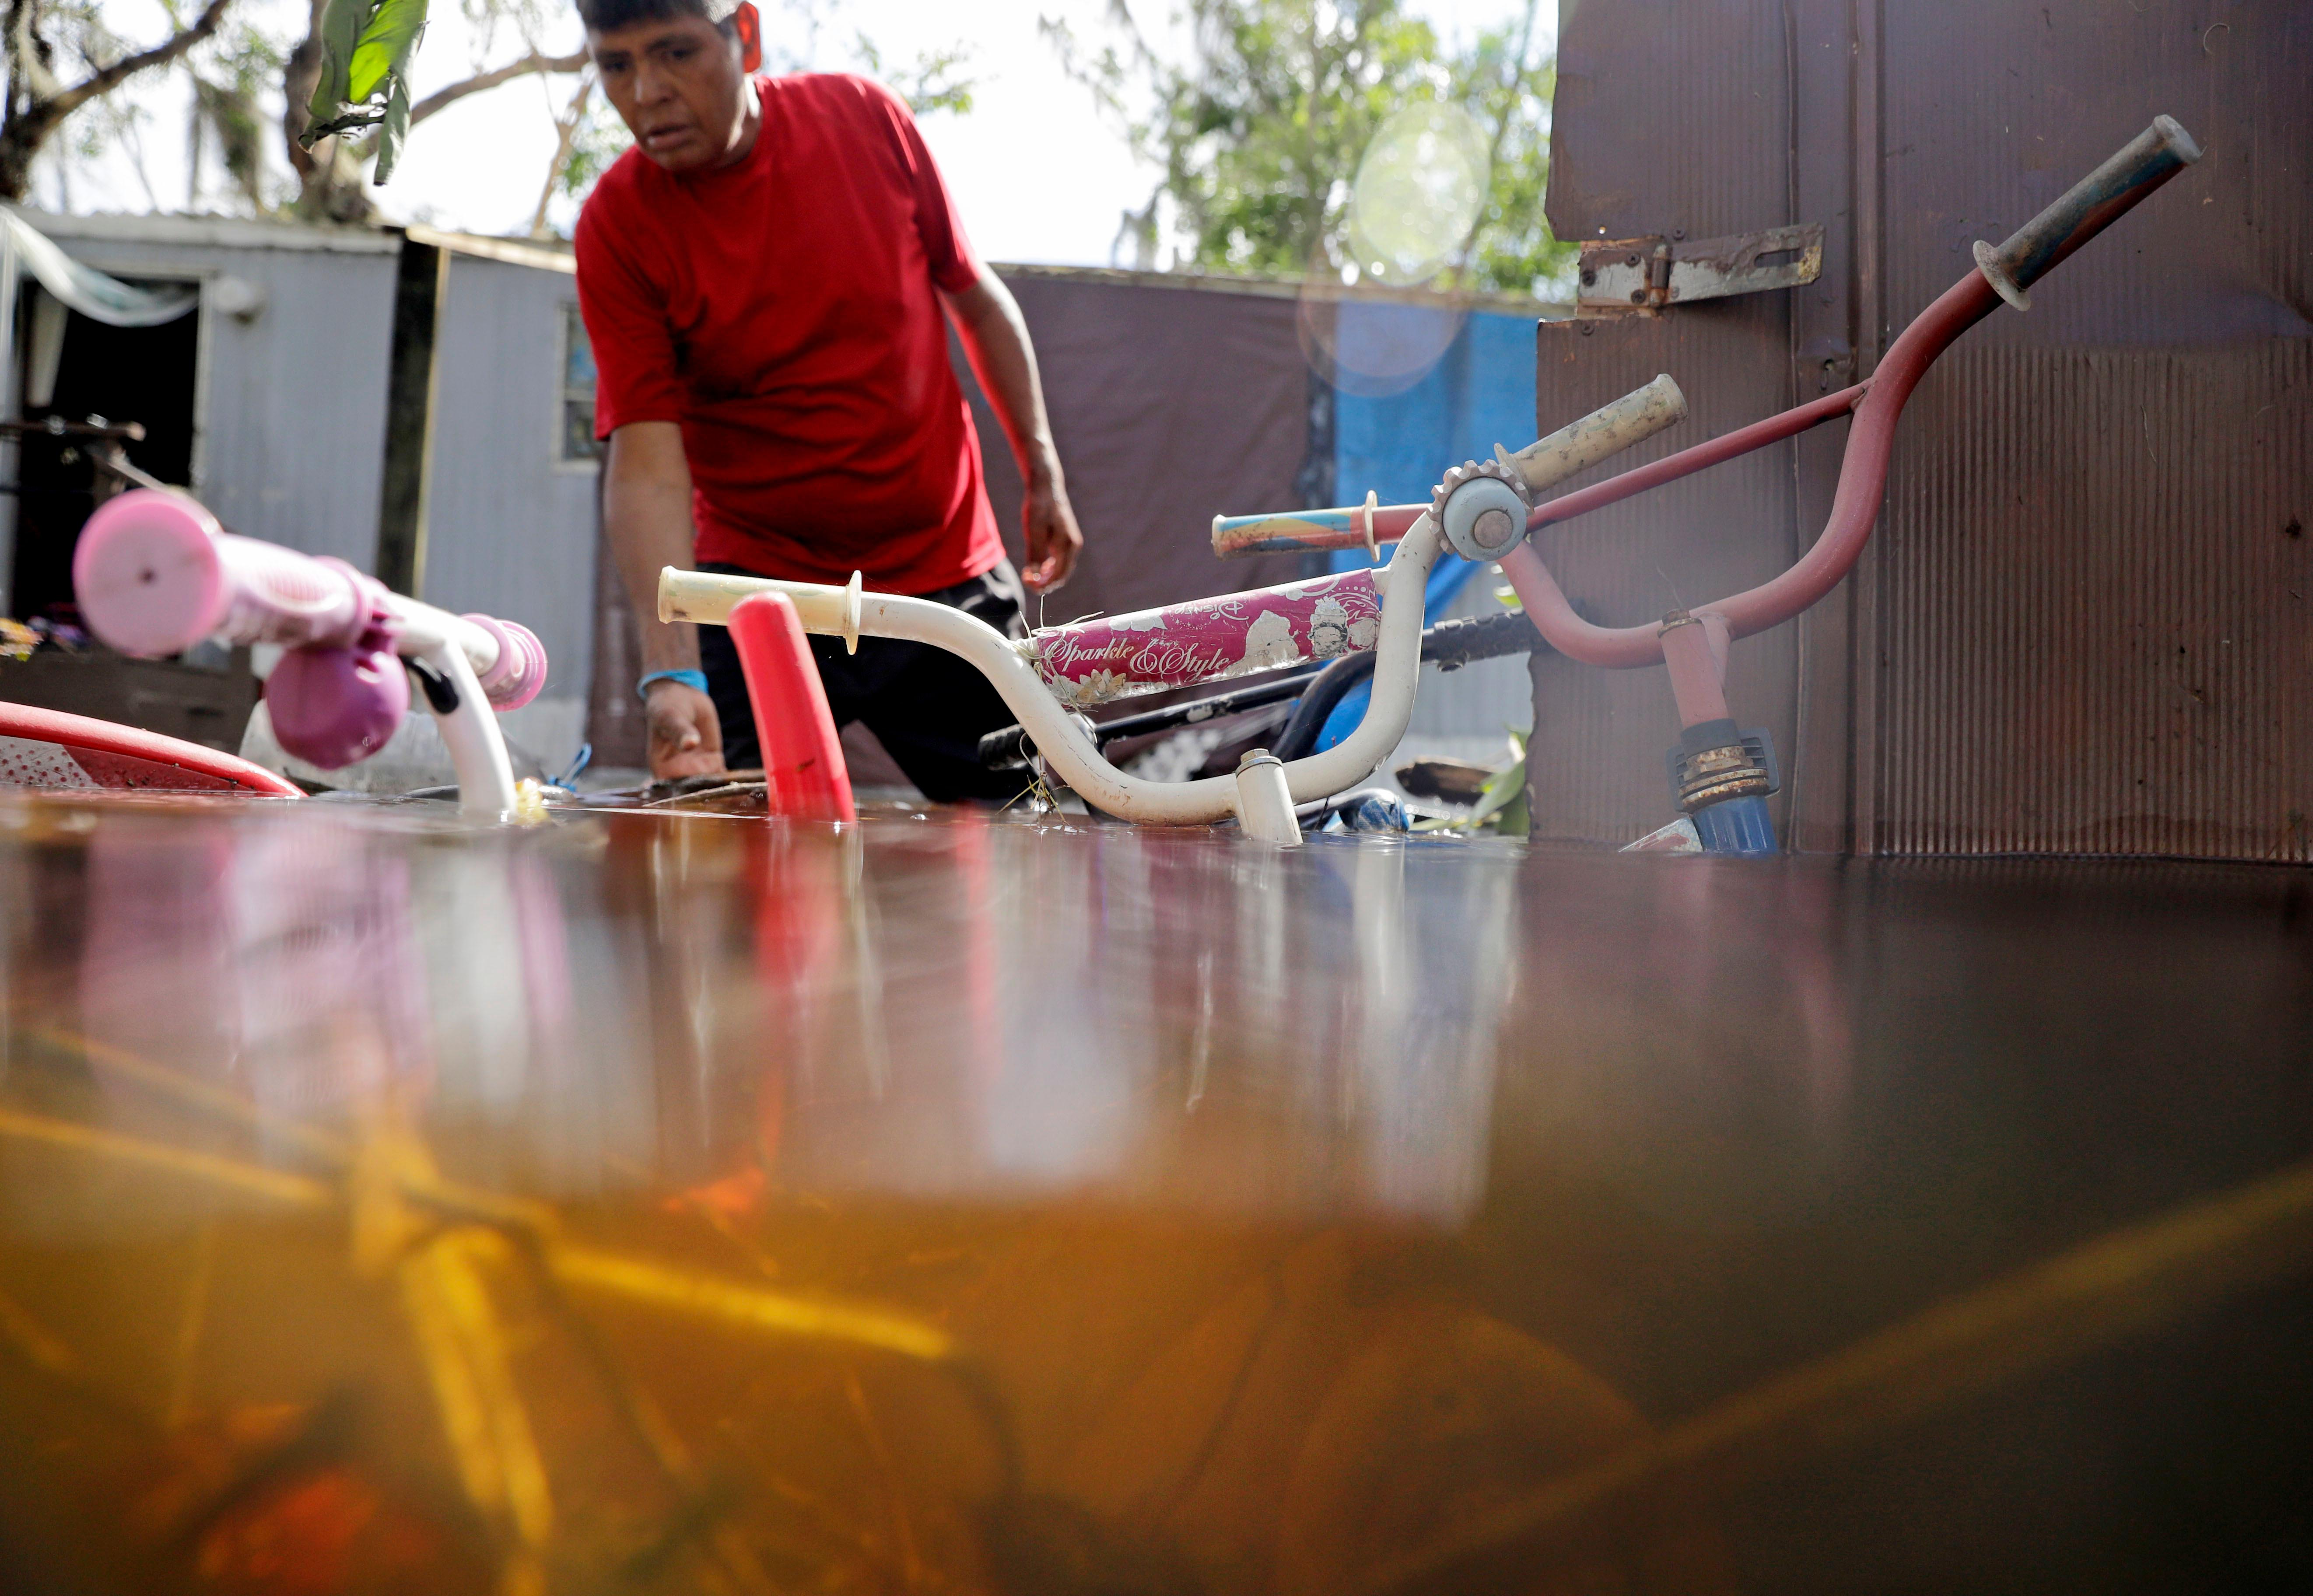 Children's bicycles are flooded outside a home as Ezequiel Cruz retrieves belongings in the aftermath of Hurricane Irma in Bonita Springs, Fla., Tuesday, Sept. 12, 2017. (AP Photo/David Goldman)